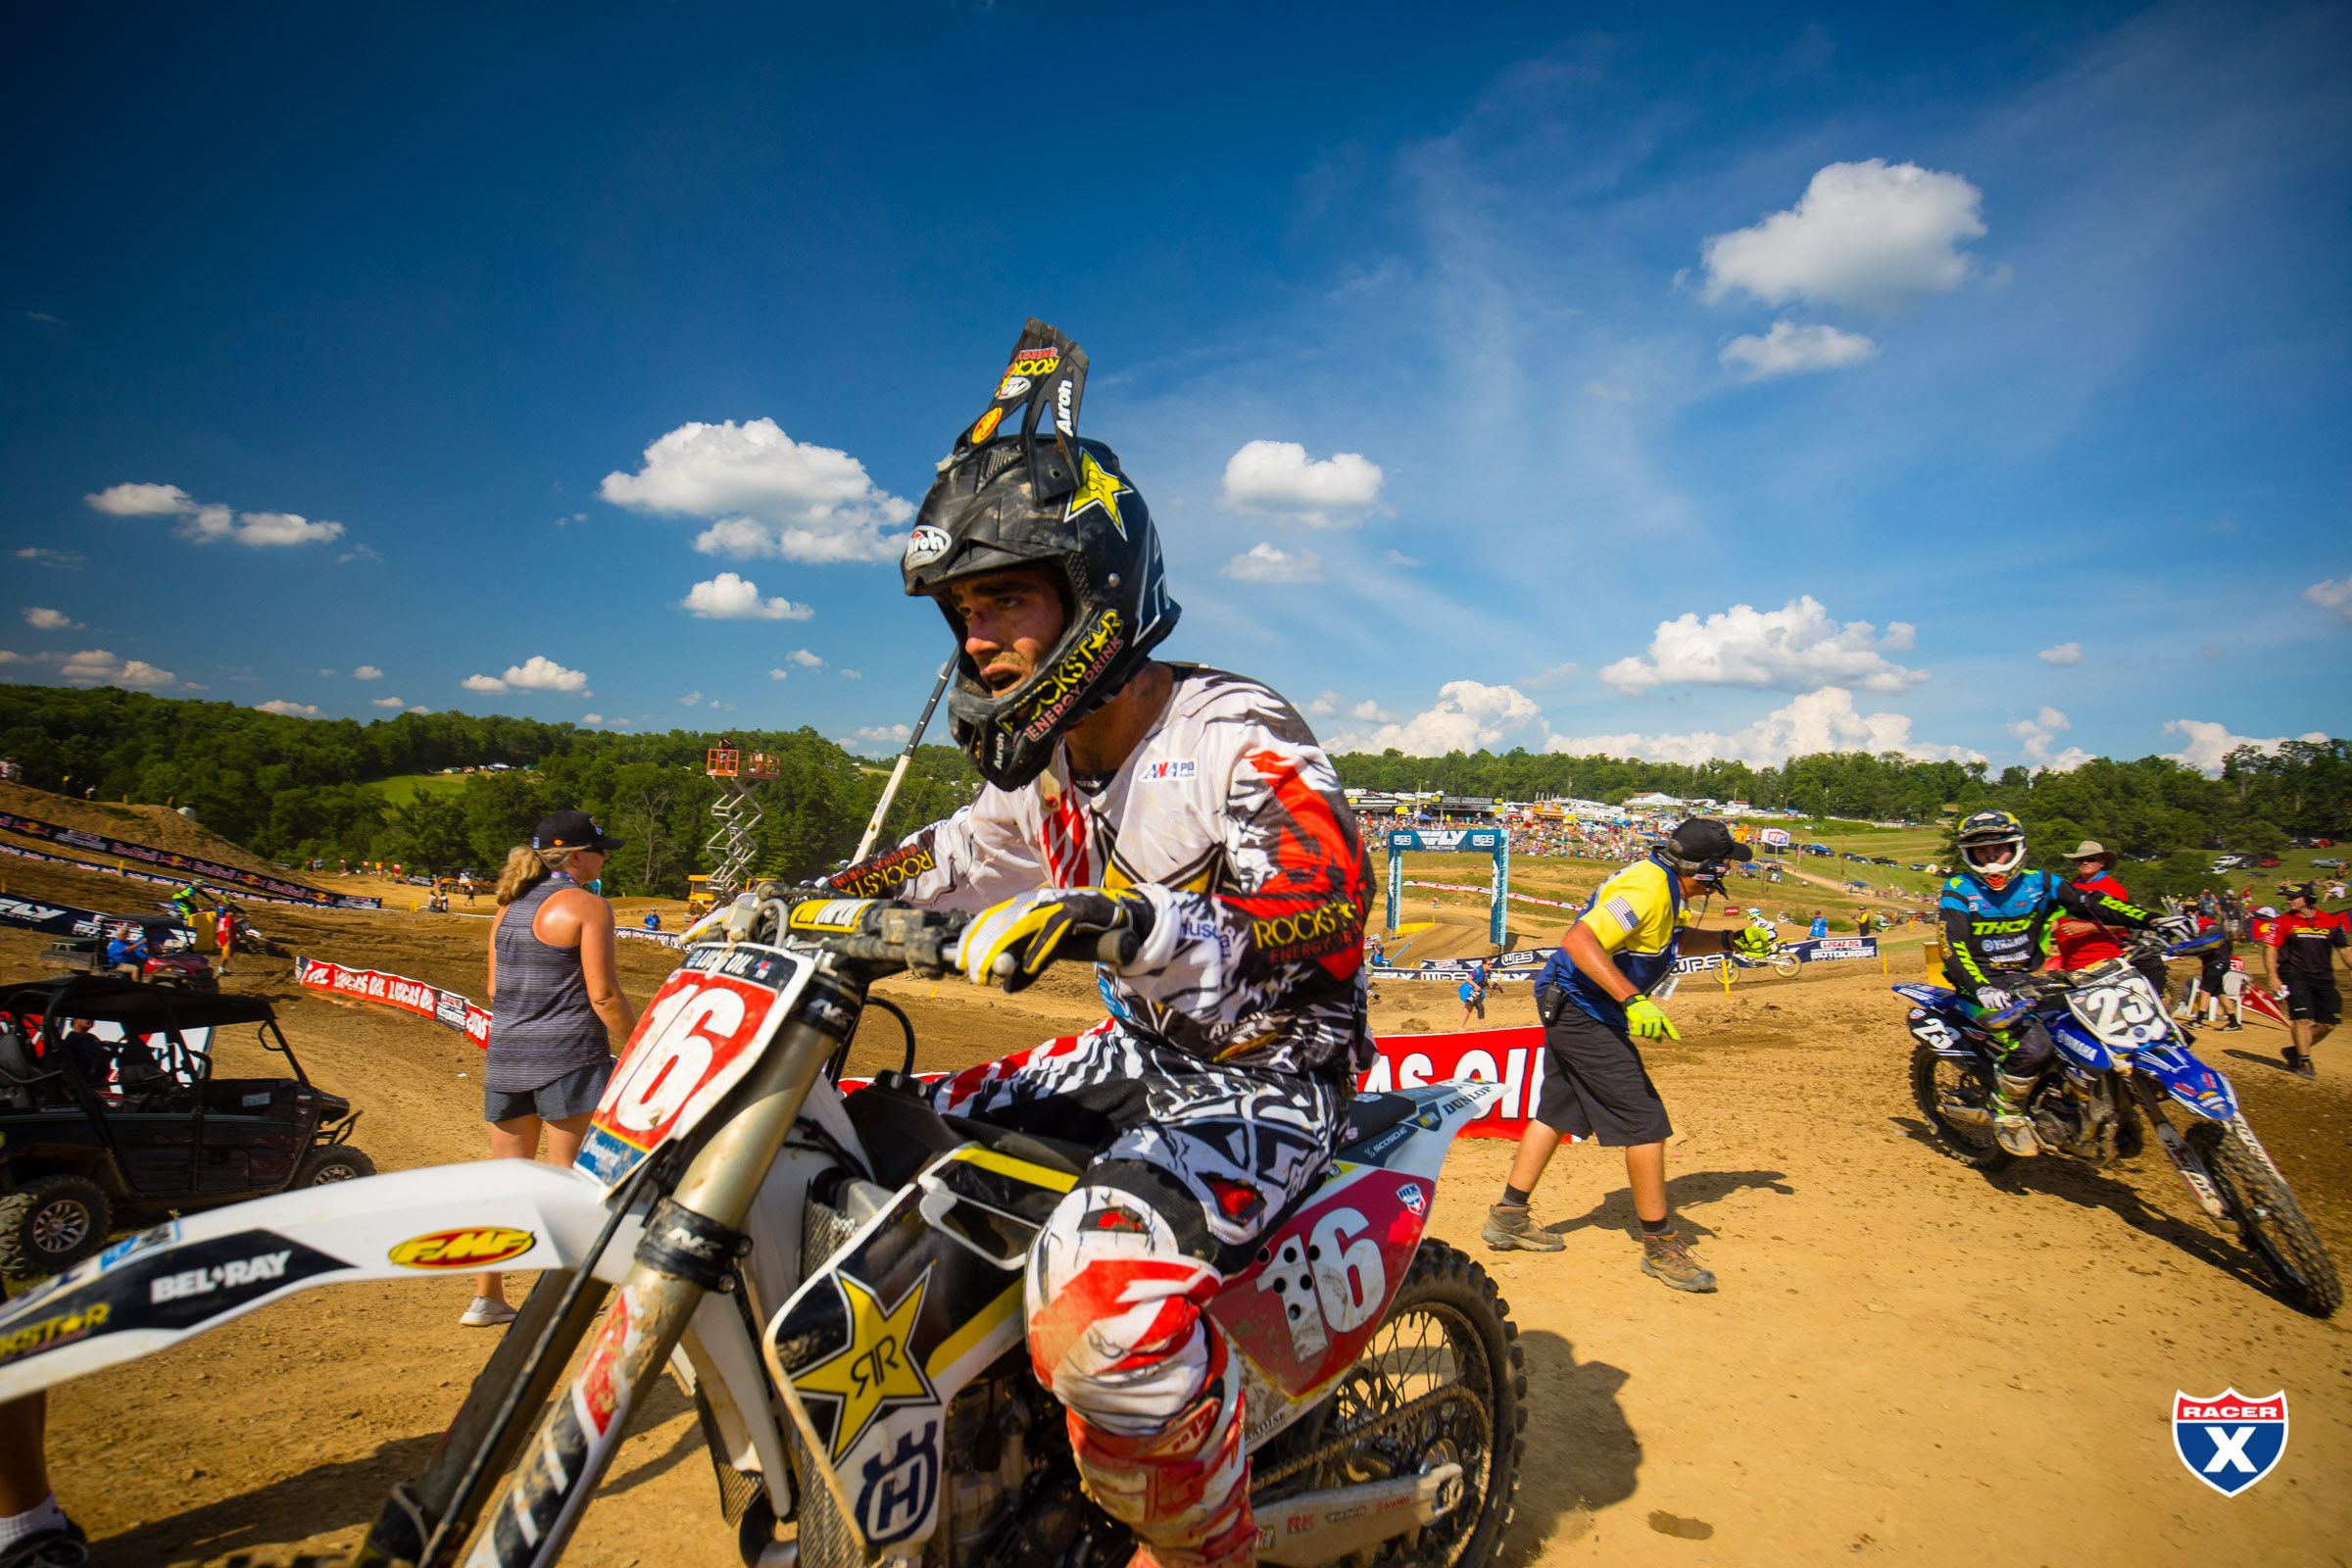 Pits_MX17_HighPoint_JK_1899